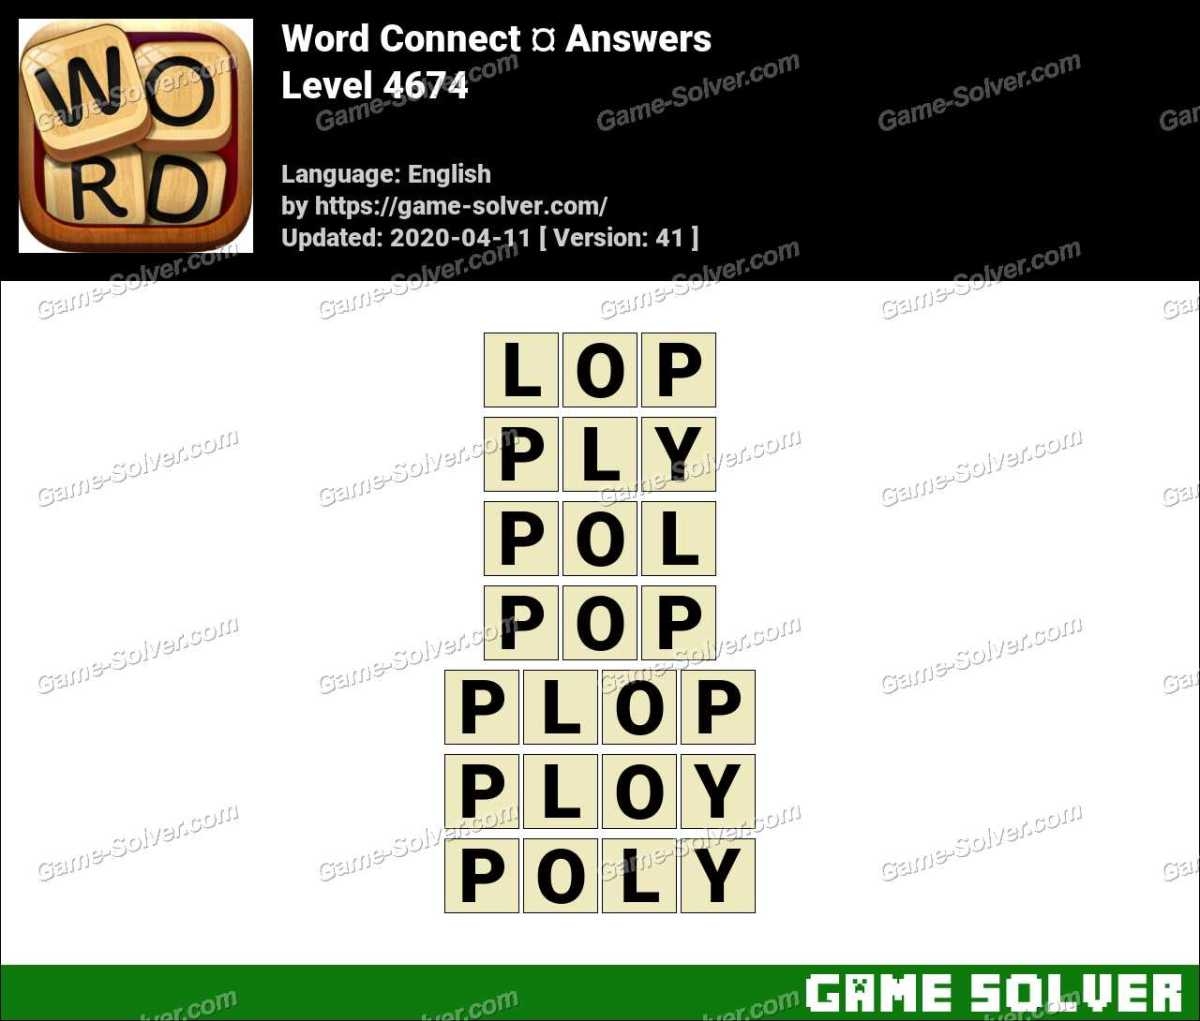 Word Connect Level 4674 Answers